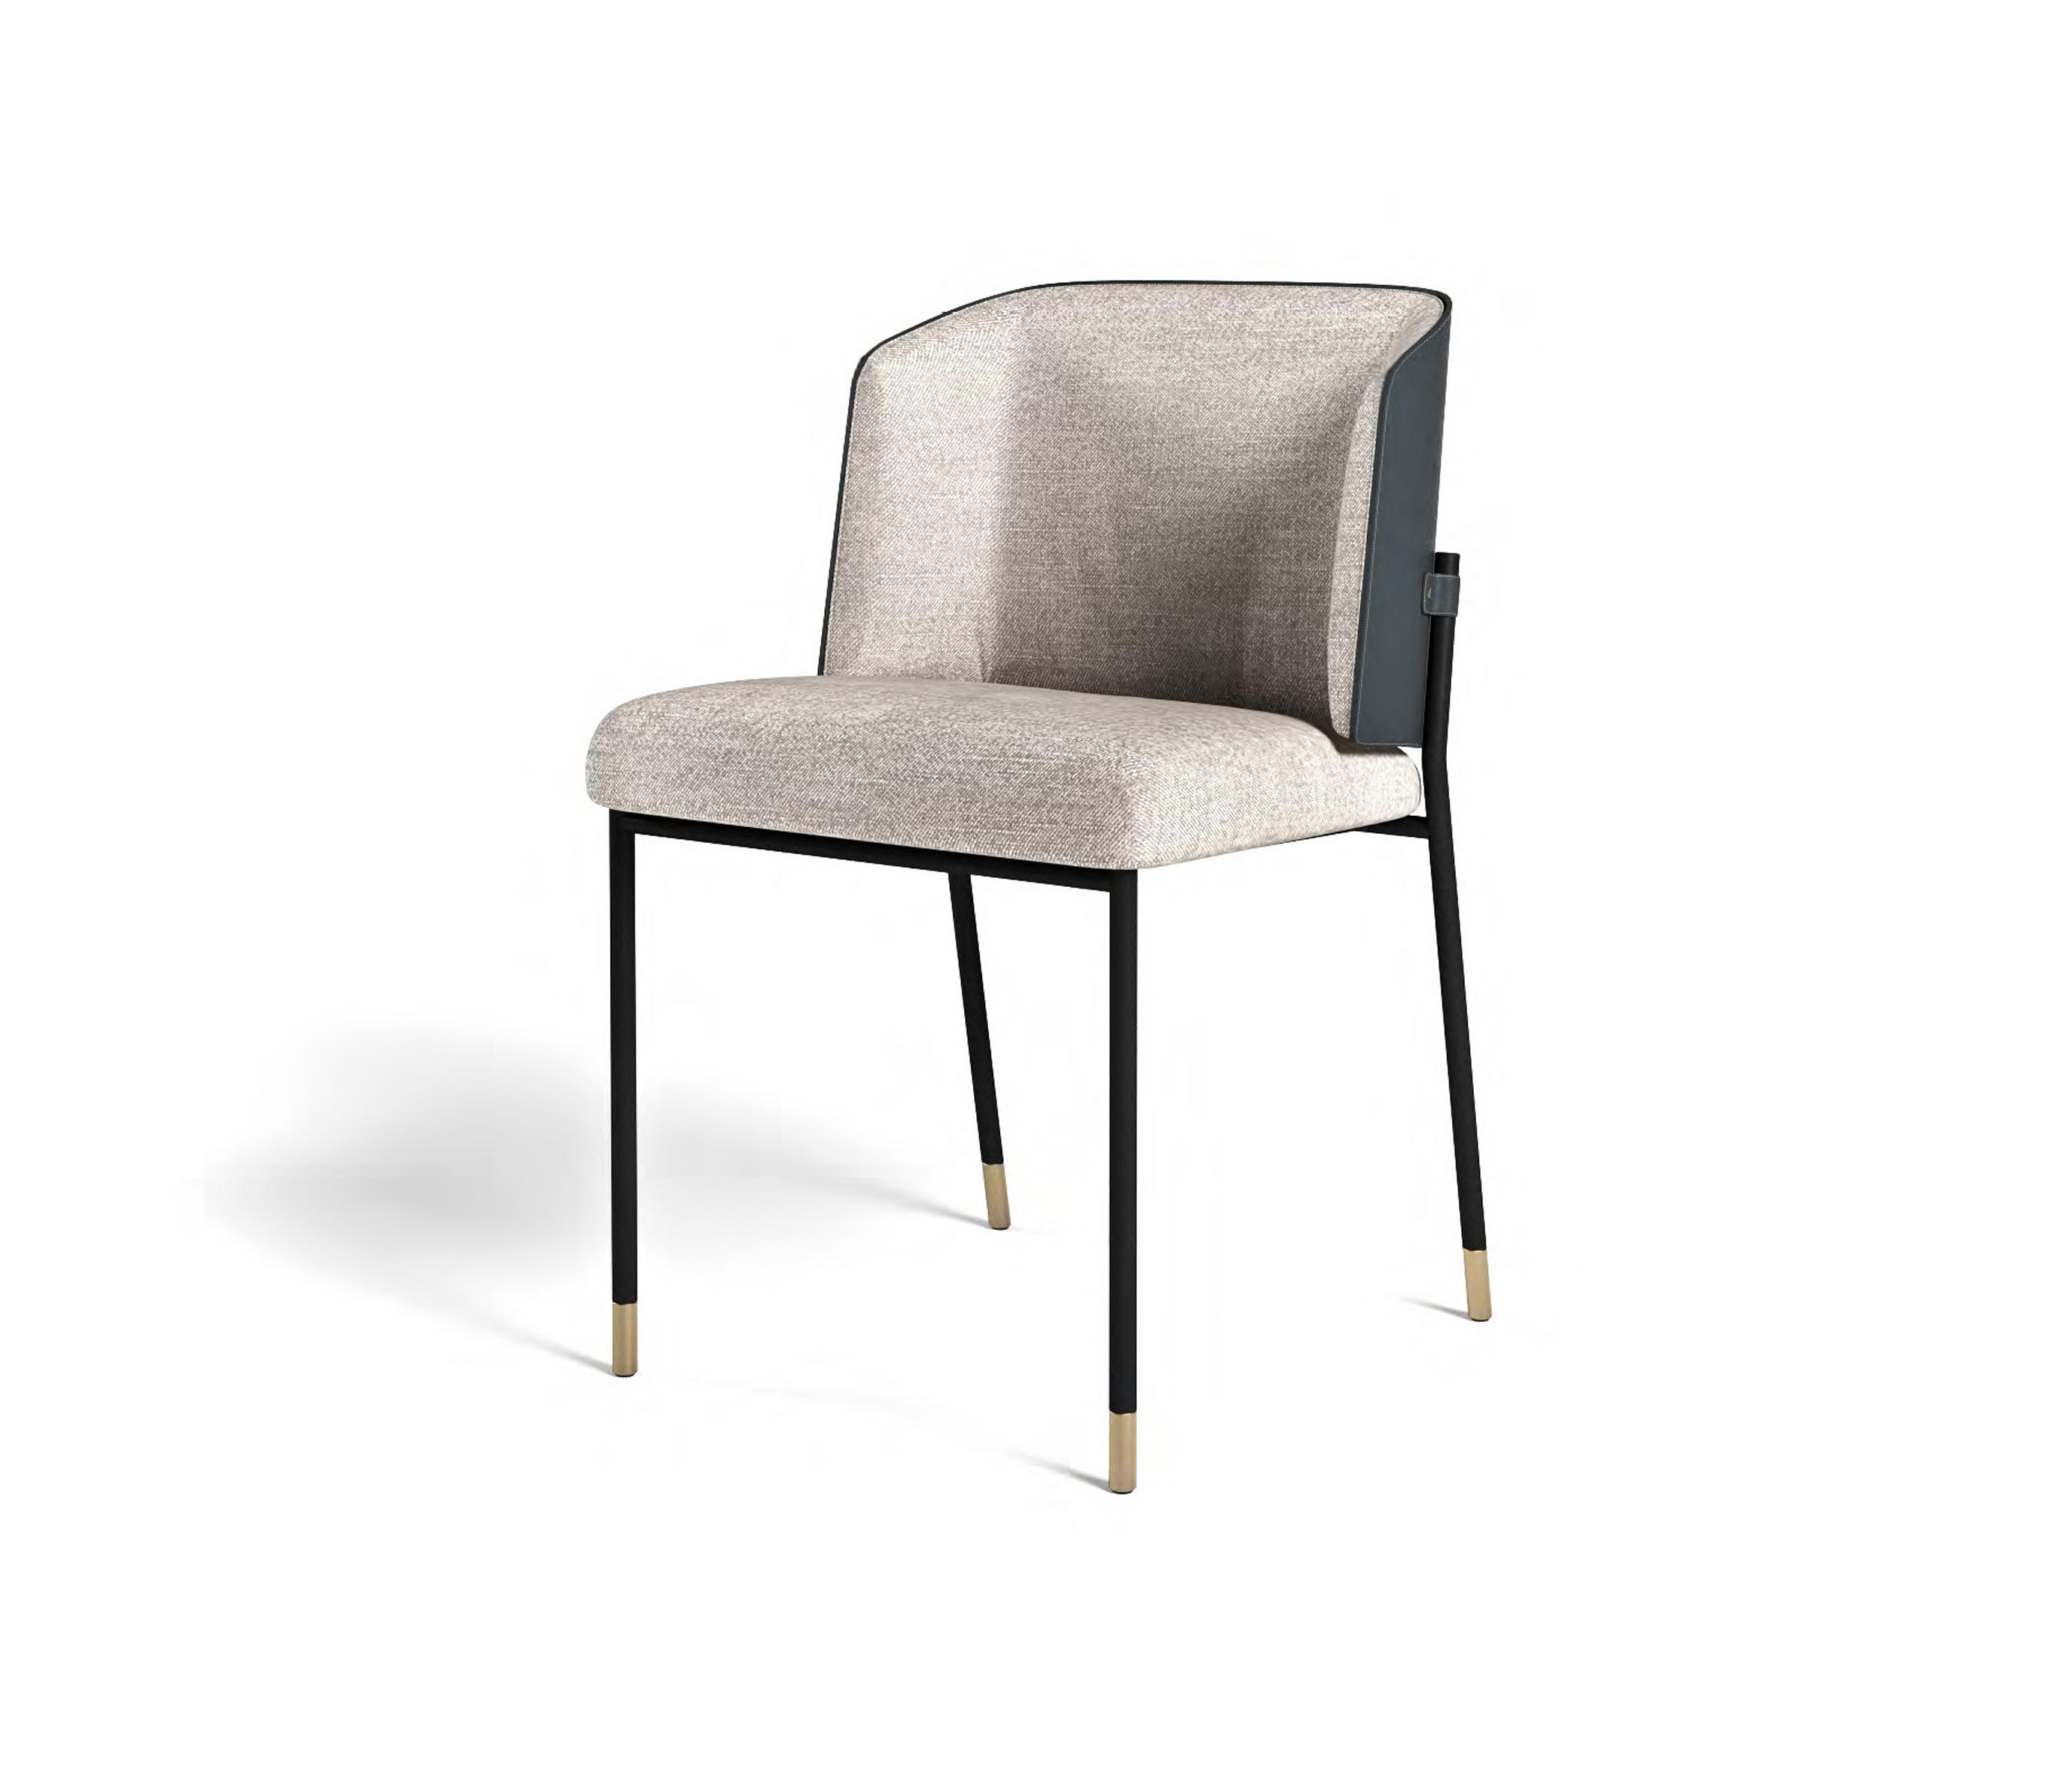 V242 Dining Chair Designer Furniture Architonic